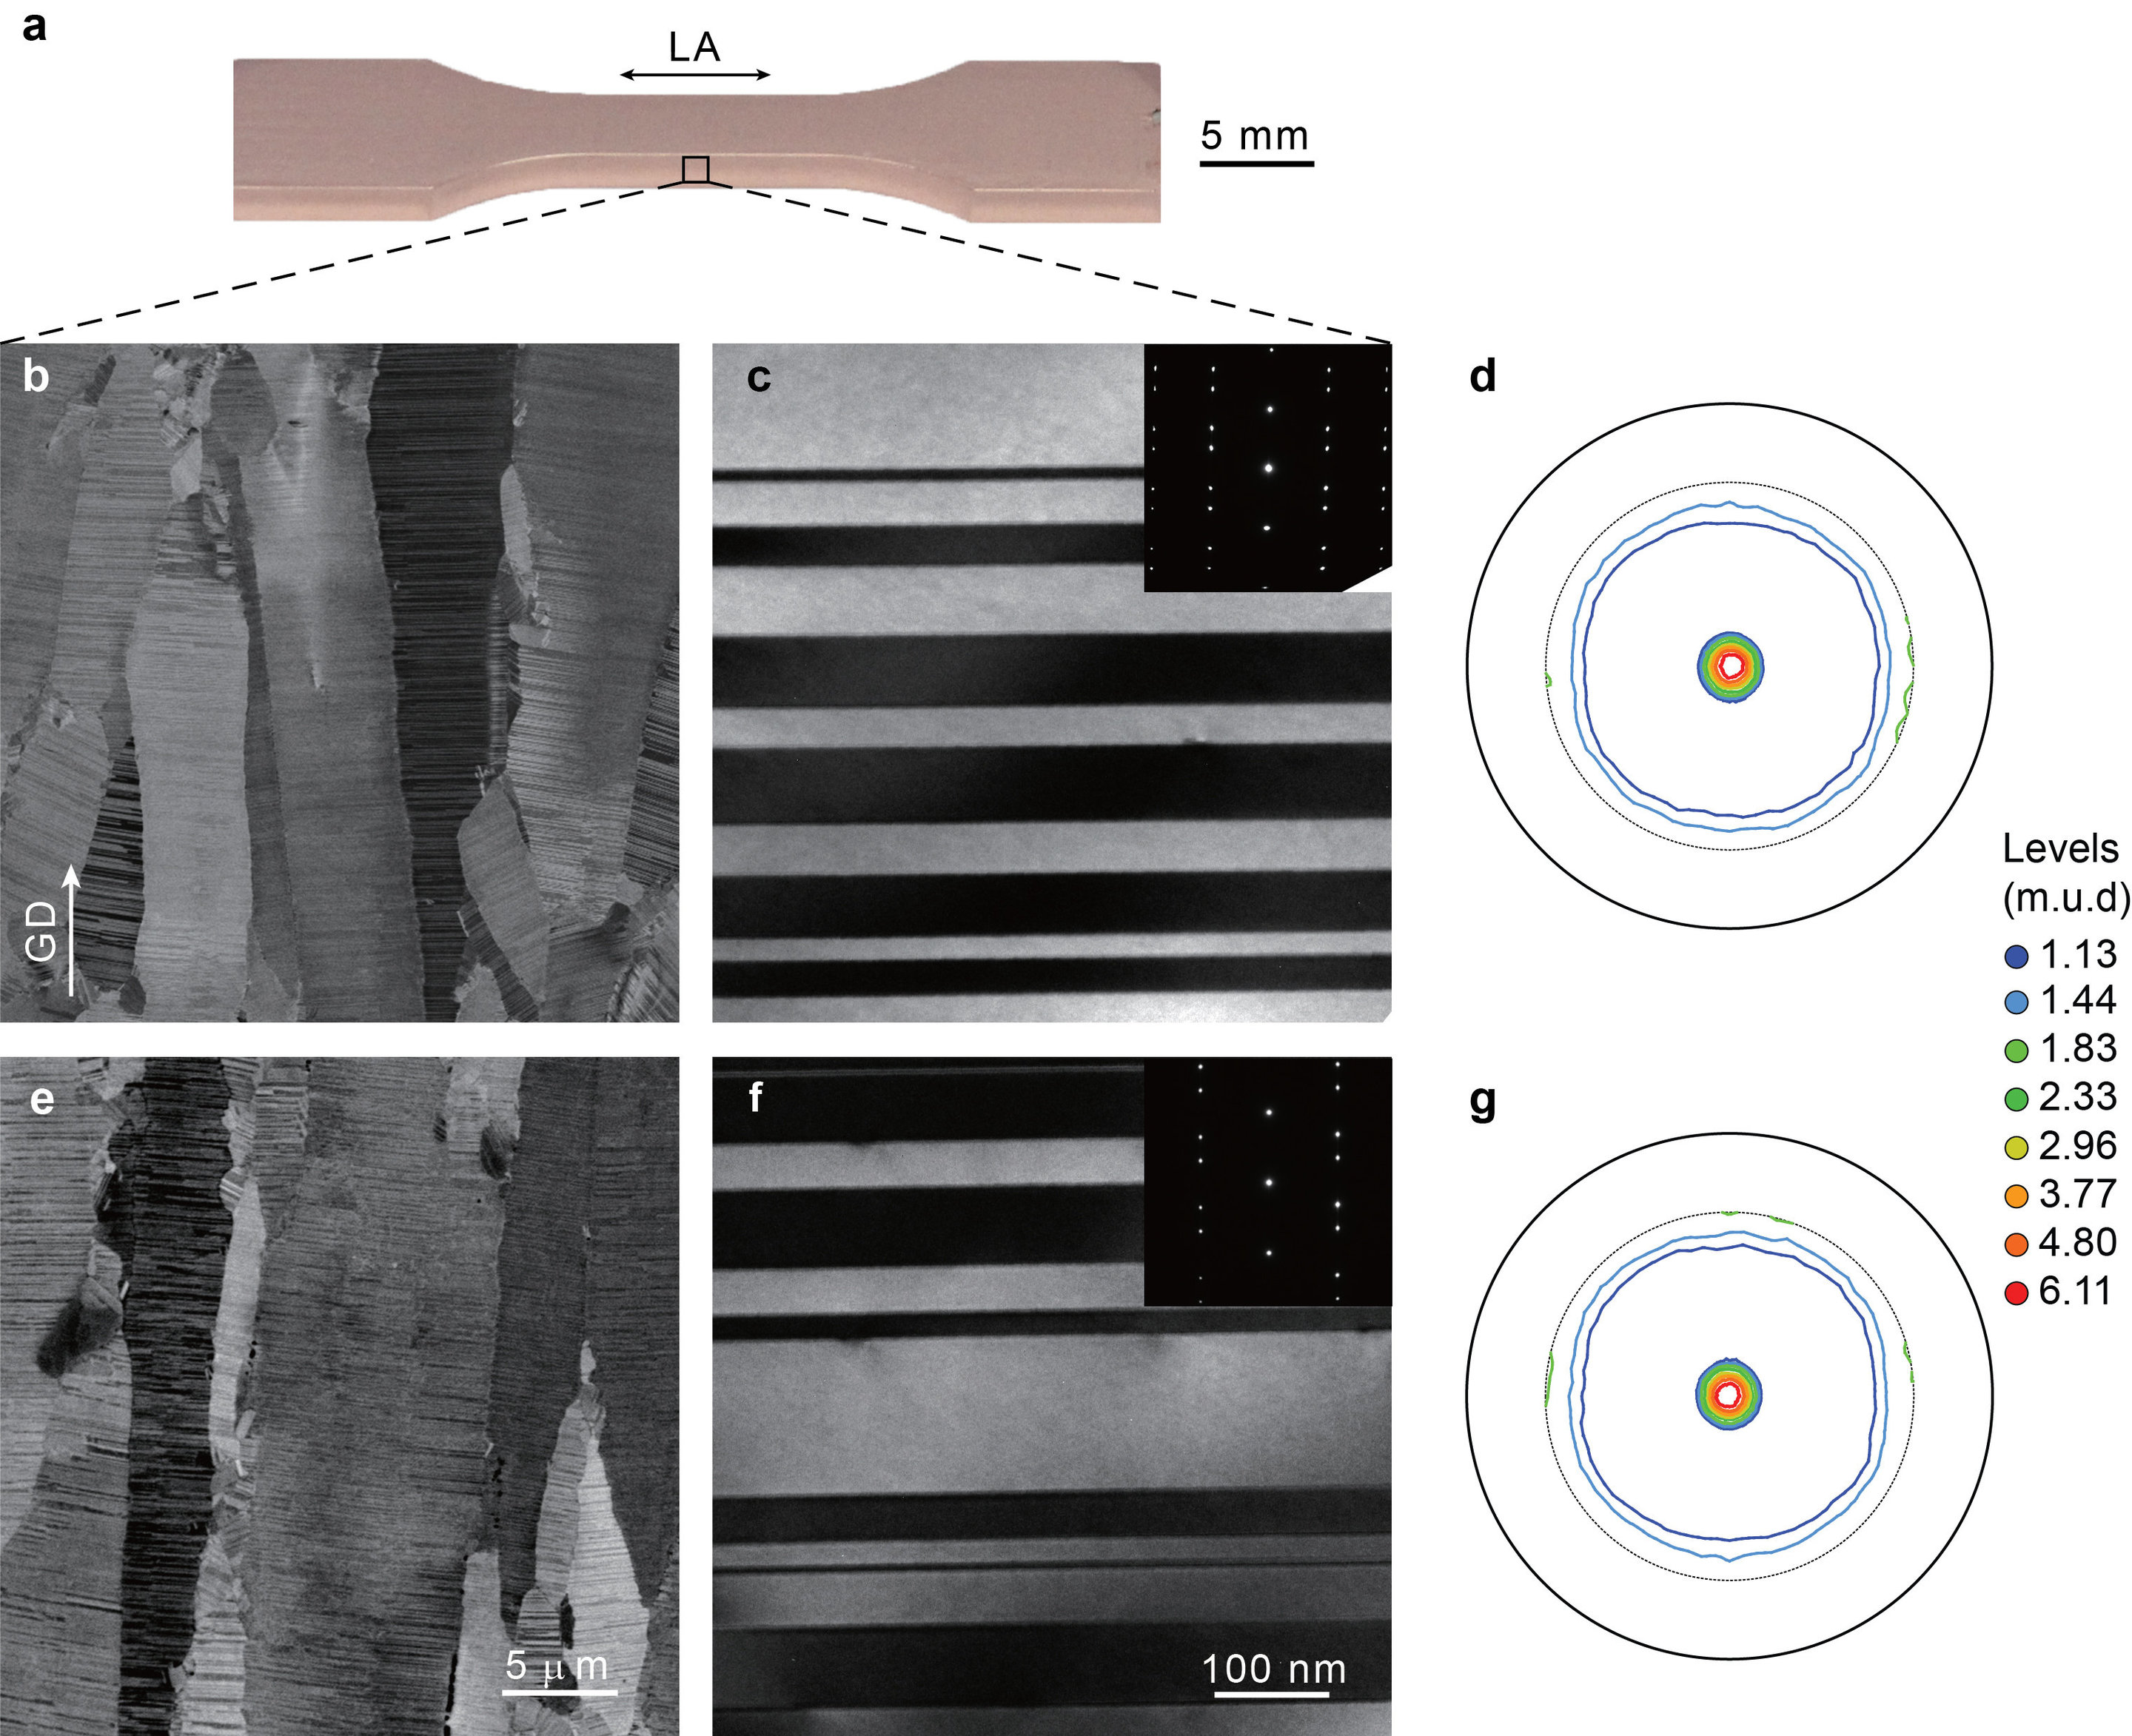 Researchers show how nanoscale patterning can decrease metal fatigue